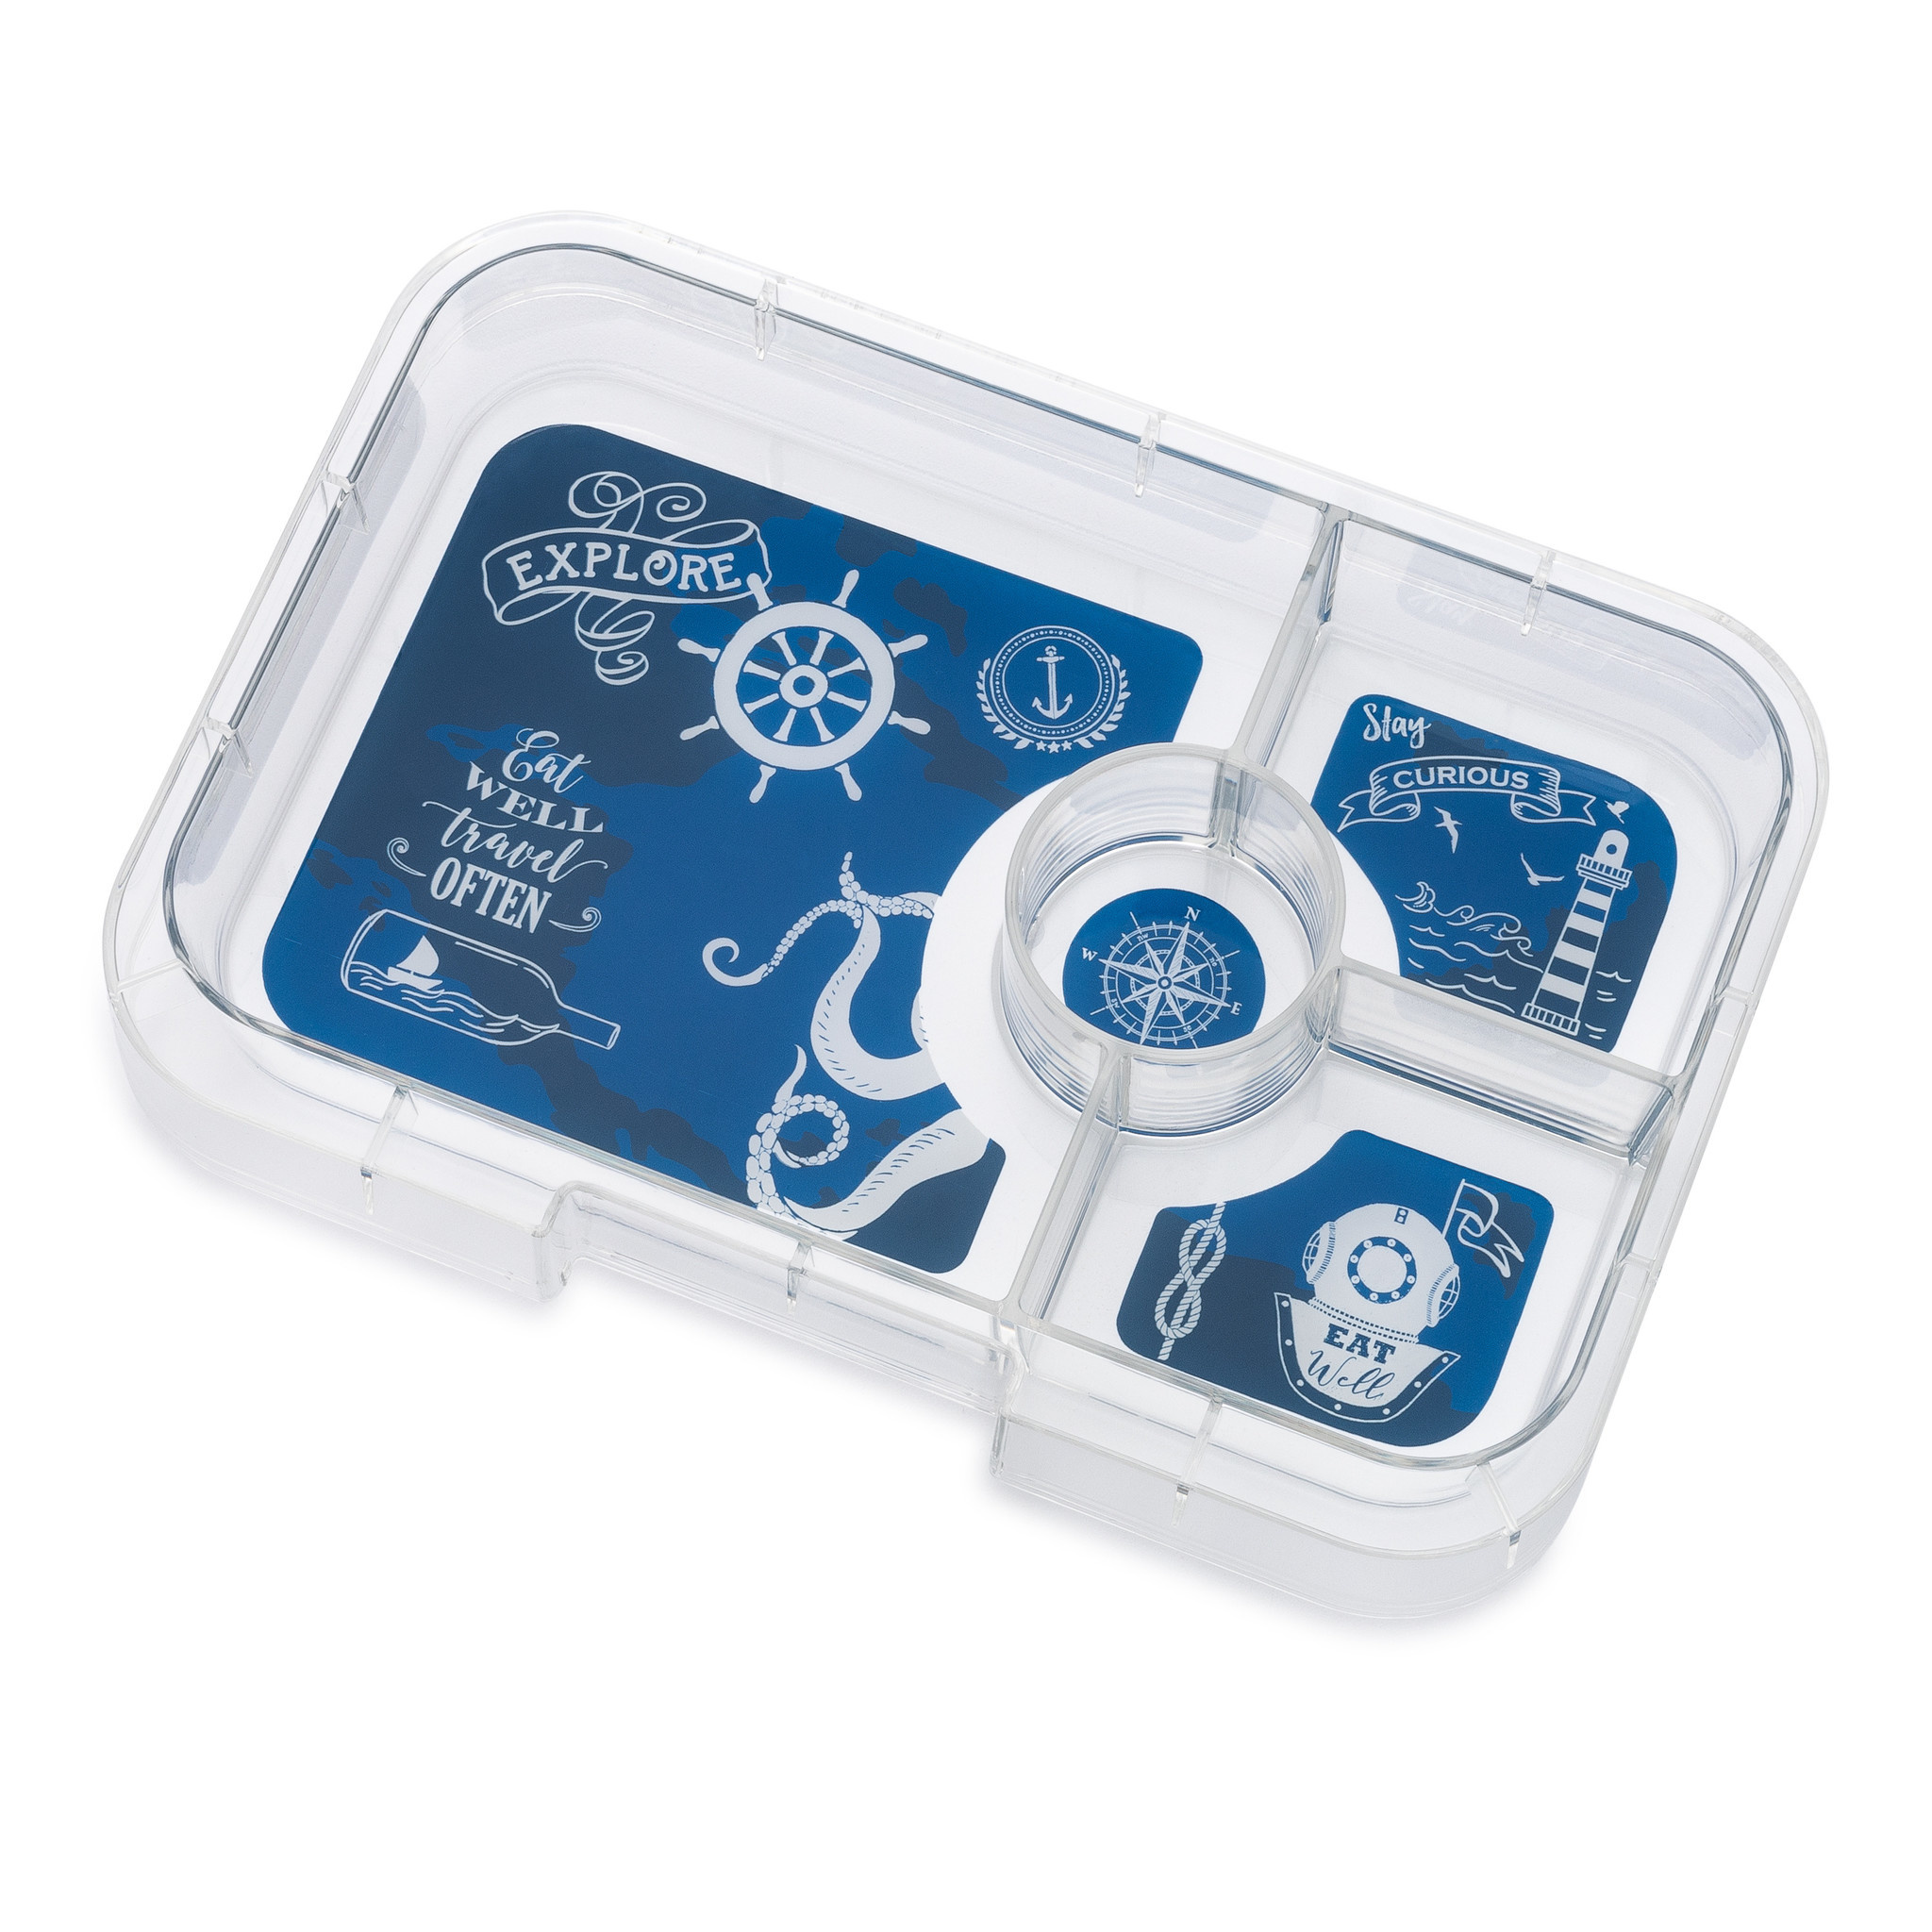 Yumbox Tapas tray 4-sections Explore-1